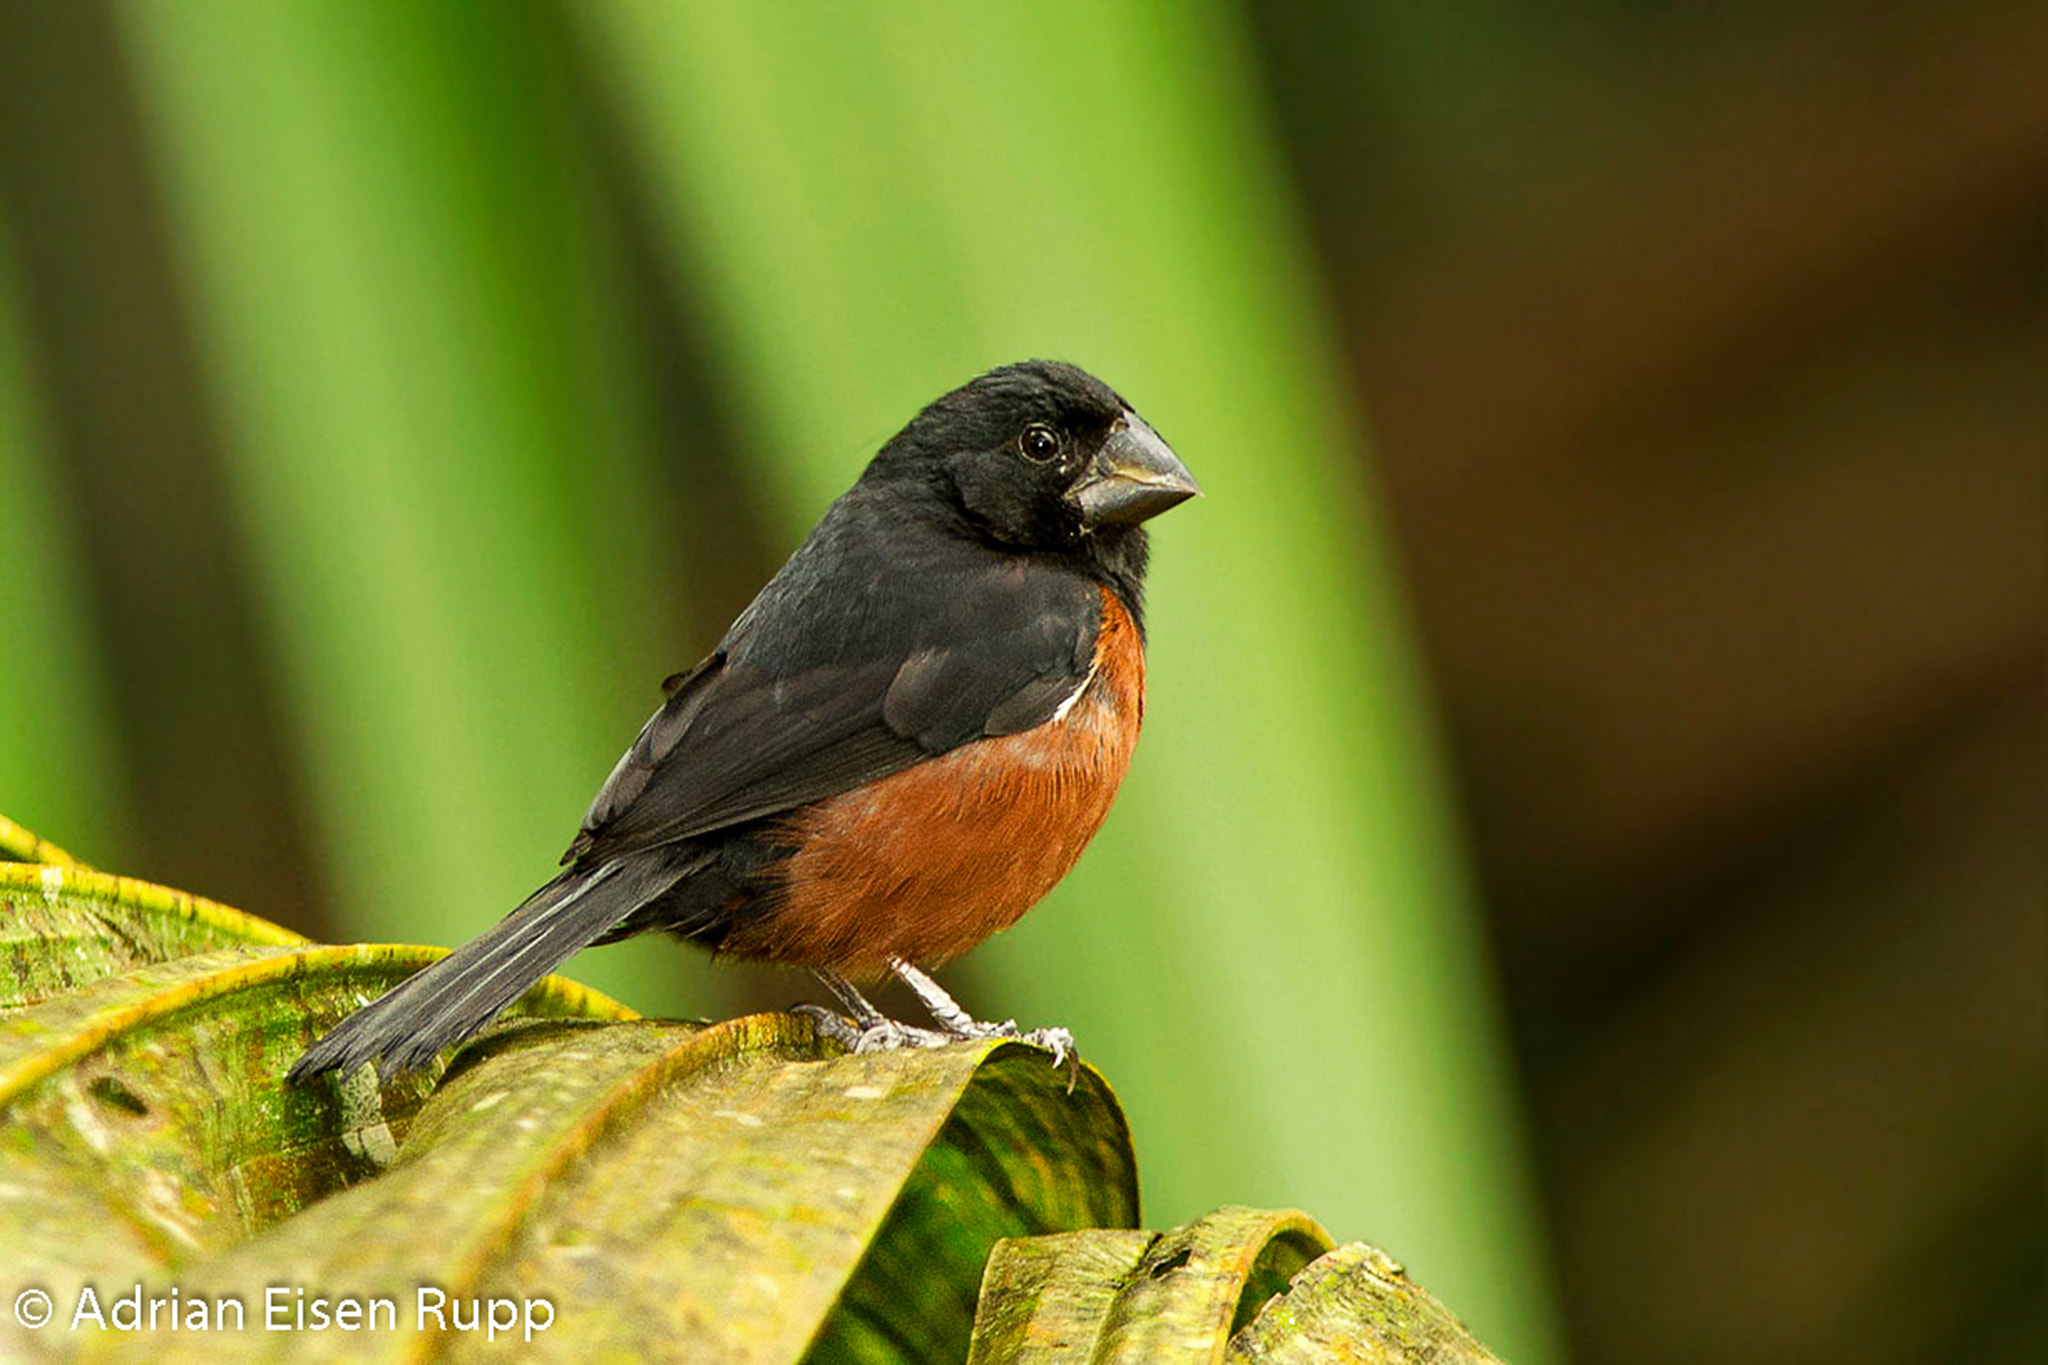 Chestnut Bellied Finch Photograph Chestnut-bellied